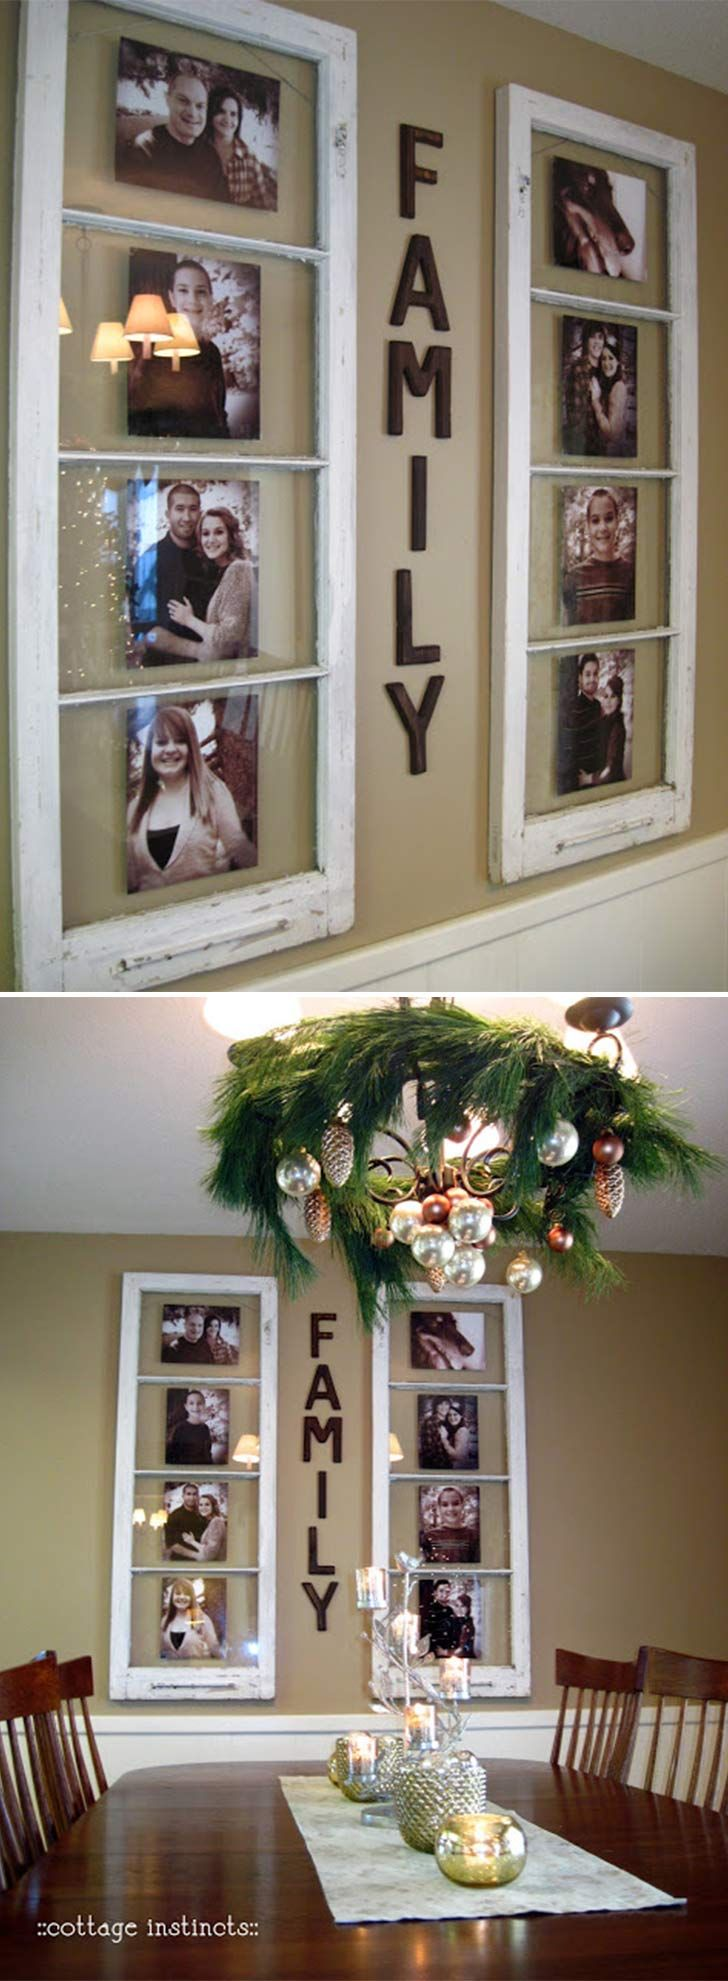 Home Decor Ideas Diy diy home decoration ideas Diy Family Photo Display Click On Image To See More Home Decor Ideas And Diy